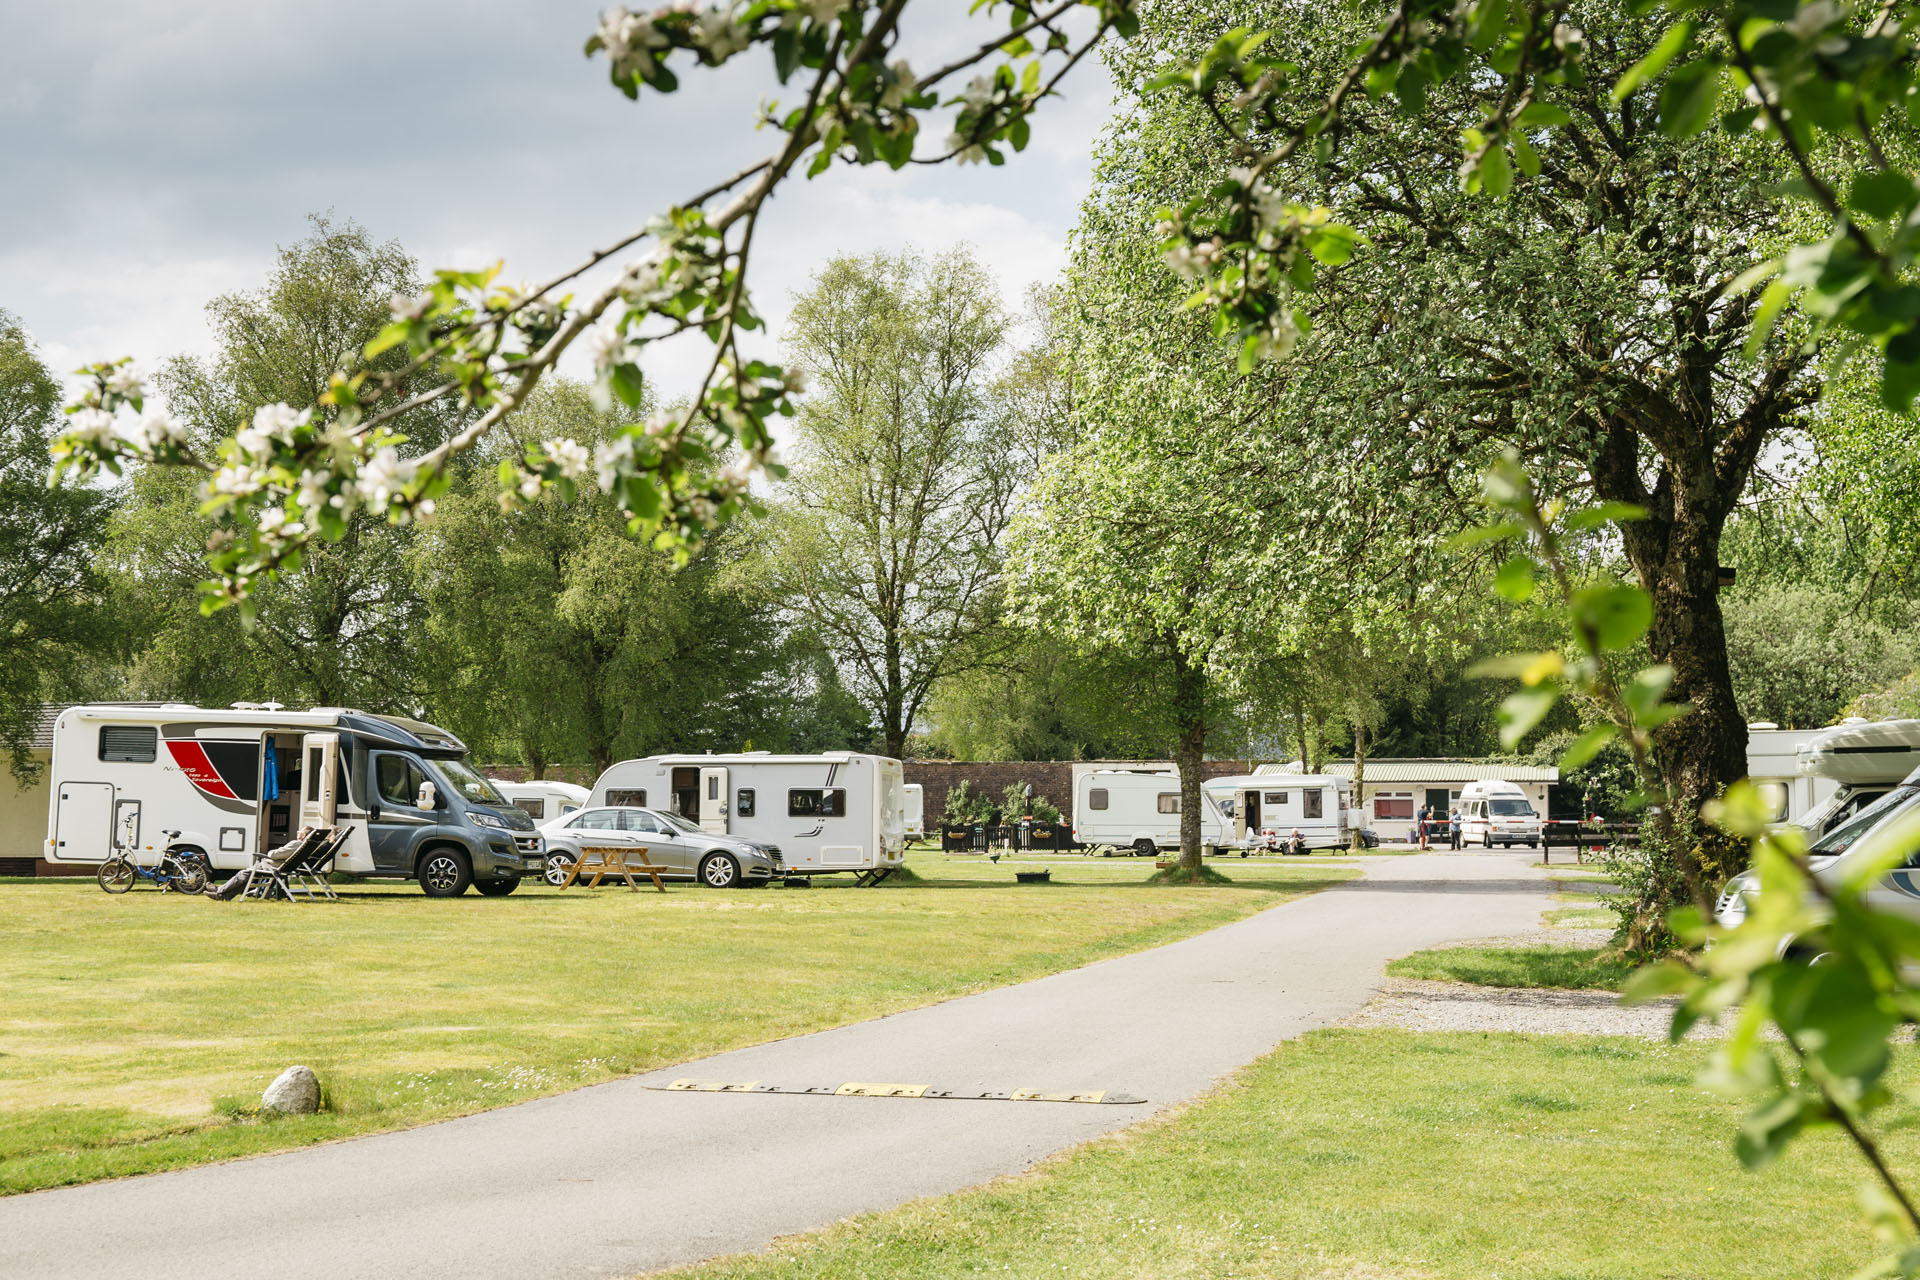 Wyeside - Camping and Caravanning Club Site - The Camping